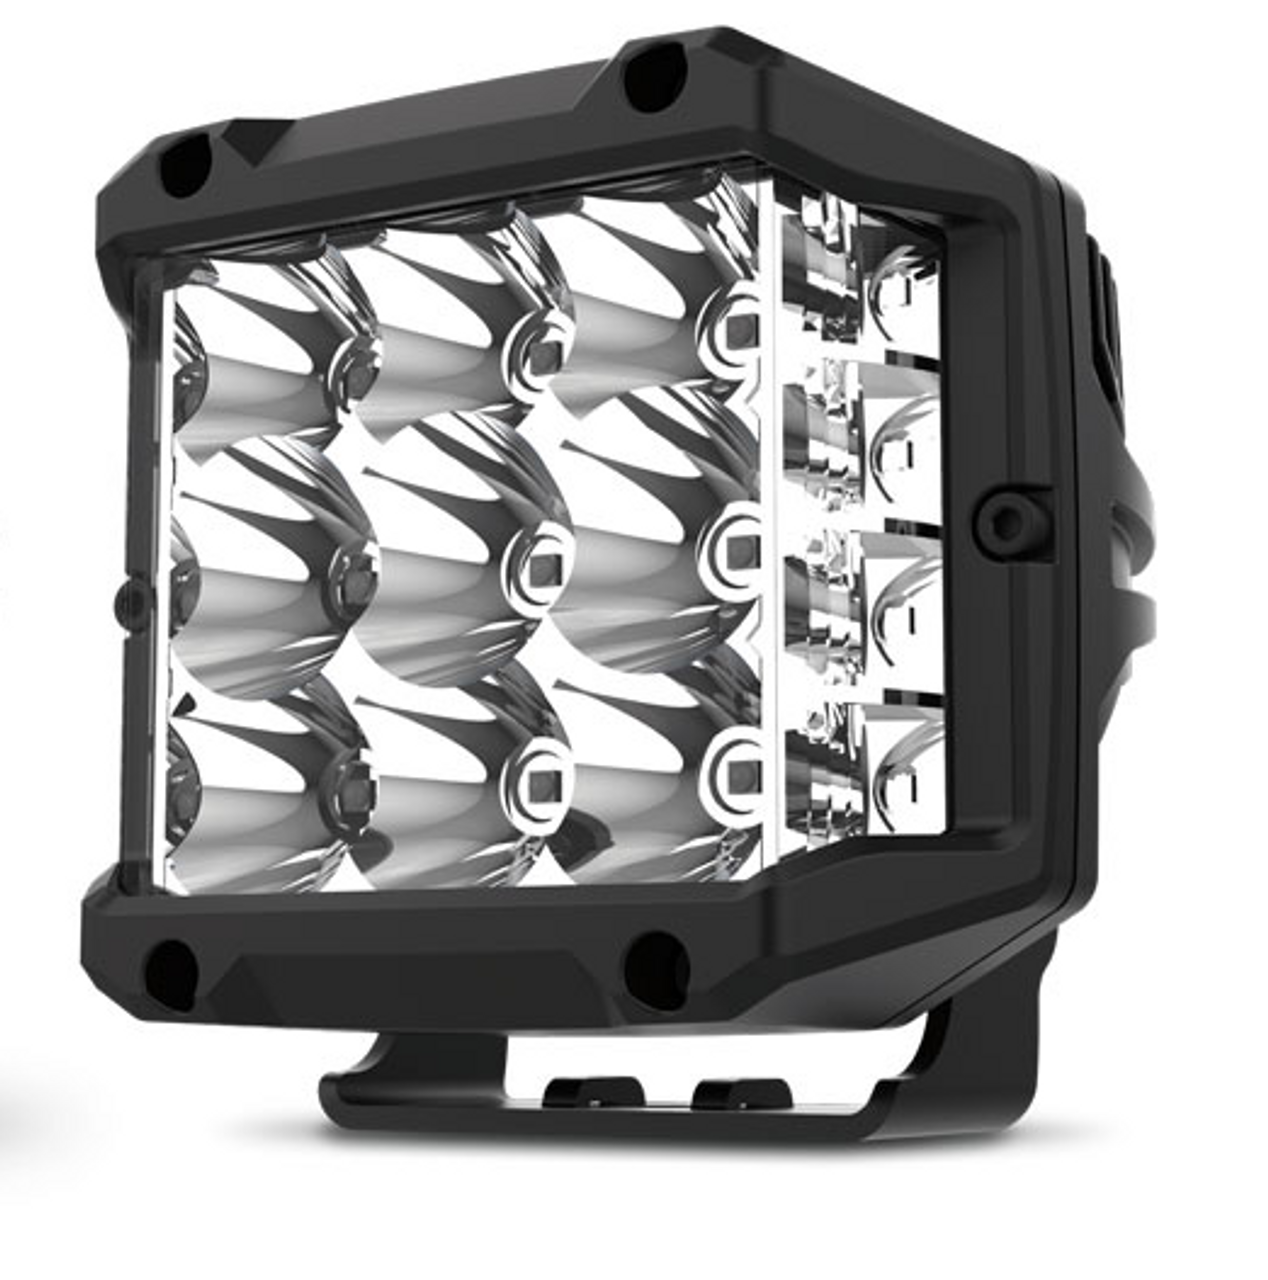 RWL7955C - Square Sidewinder LED Flood Beam Work Light. 55 Watt. Multi-Volt 10v & 30 Volt DC. 5 Year Warranty. Combination Beam 55 watts, 4500Lm. Great Work Light. RoadVision. Ultimate LED.